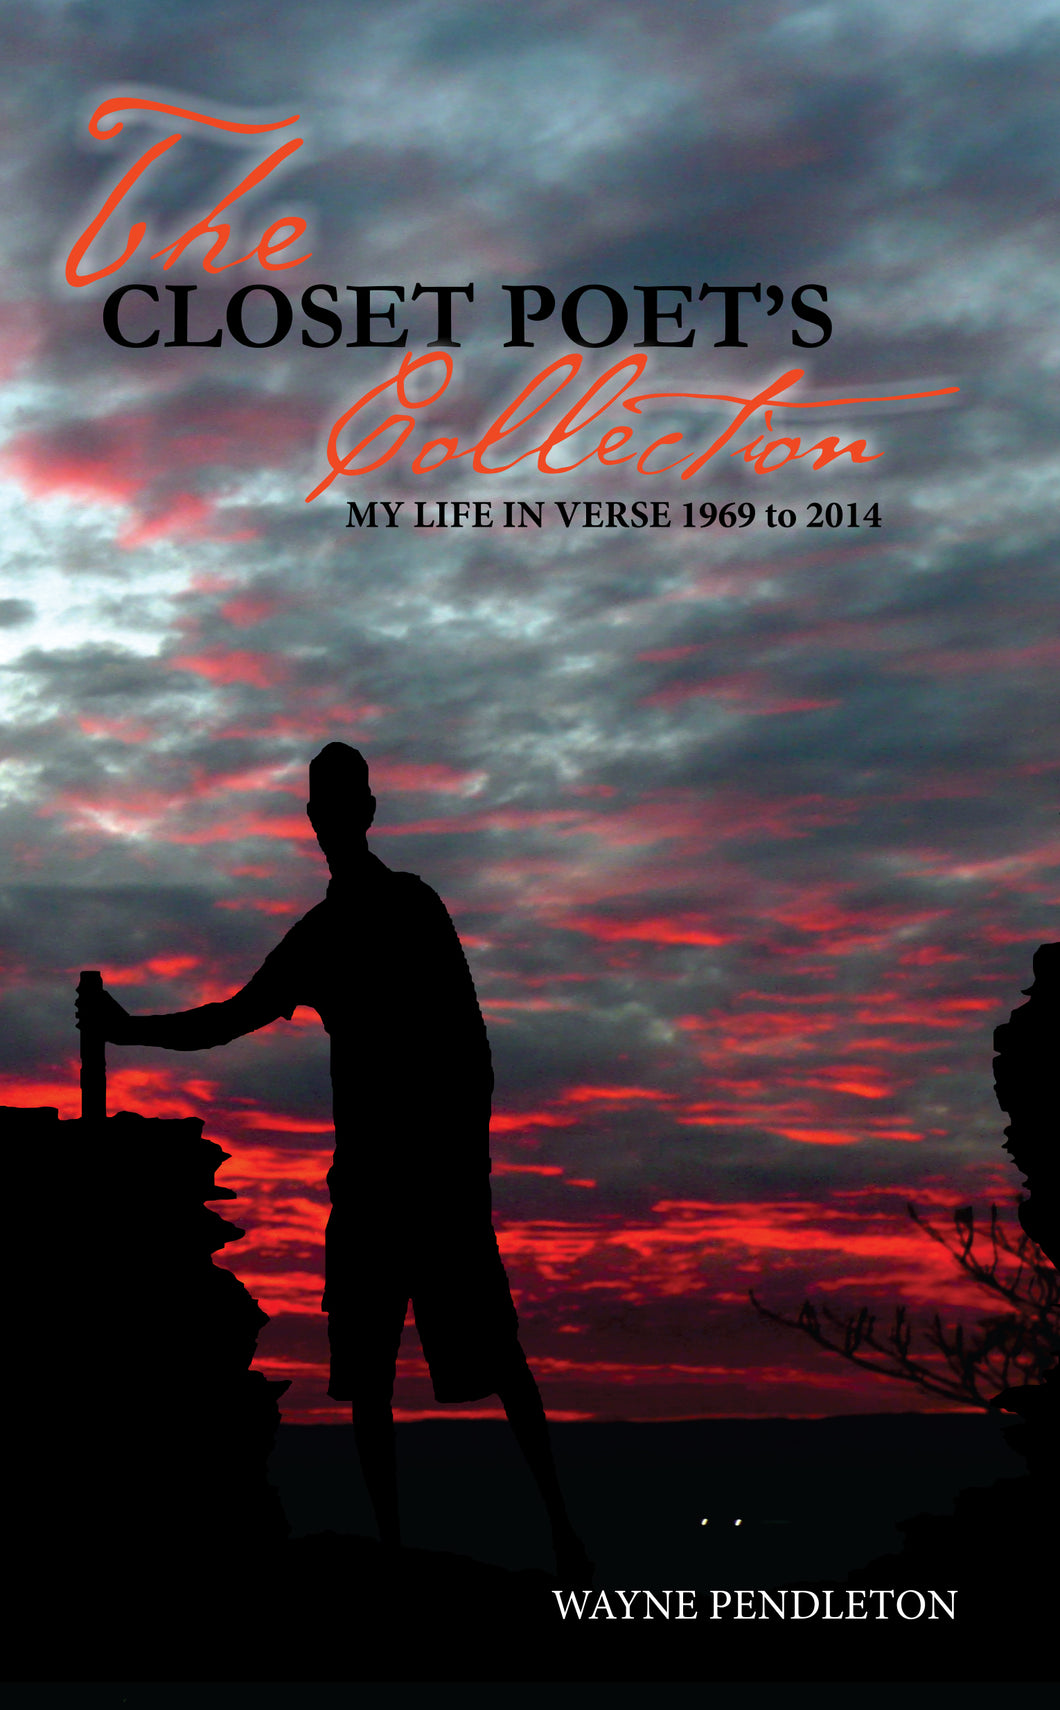 The Closet Poet's Collection - My Life In Verse 1969 to 2014